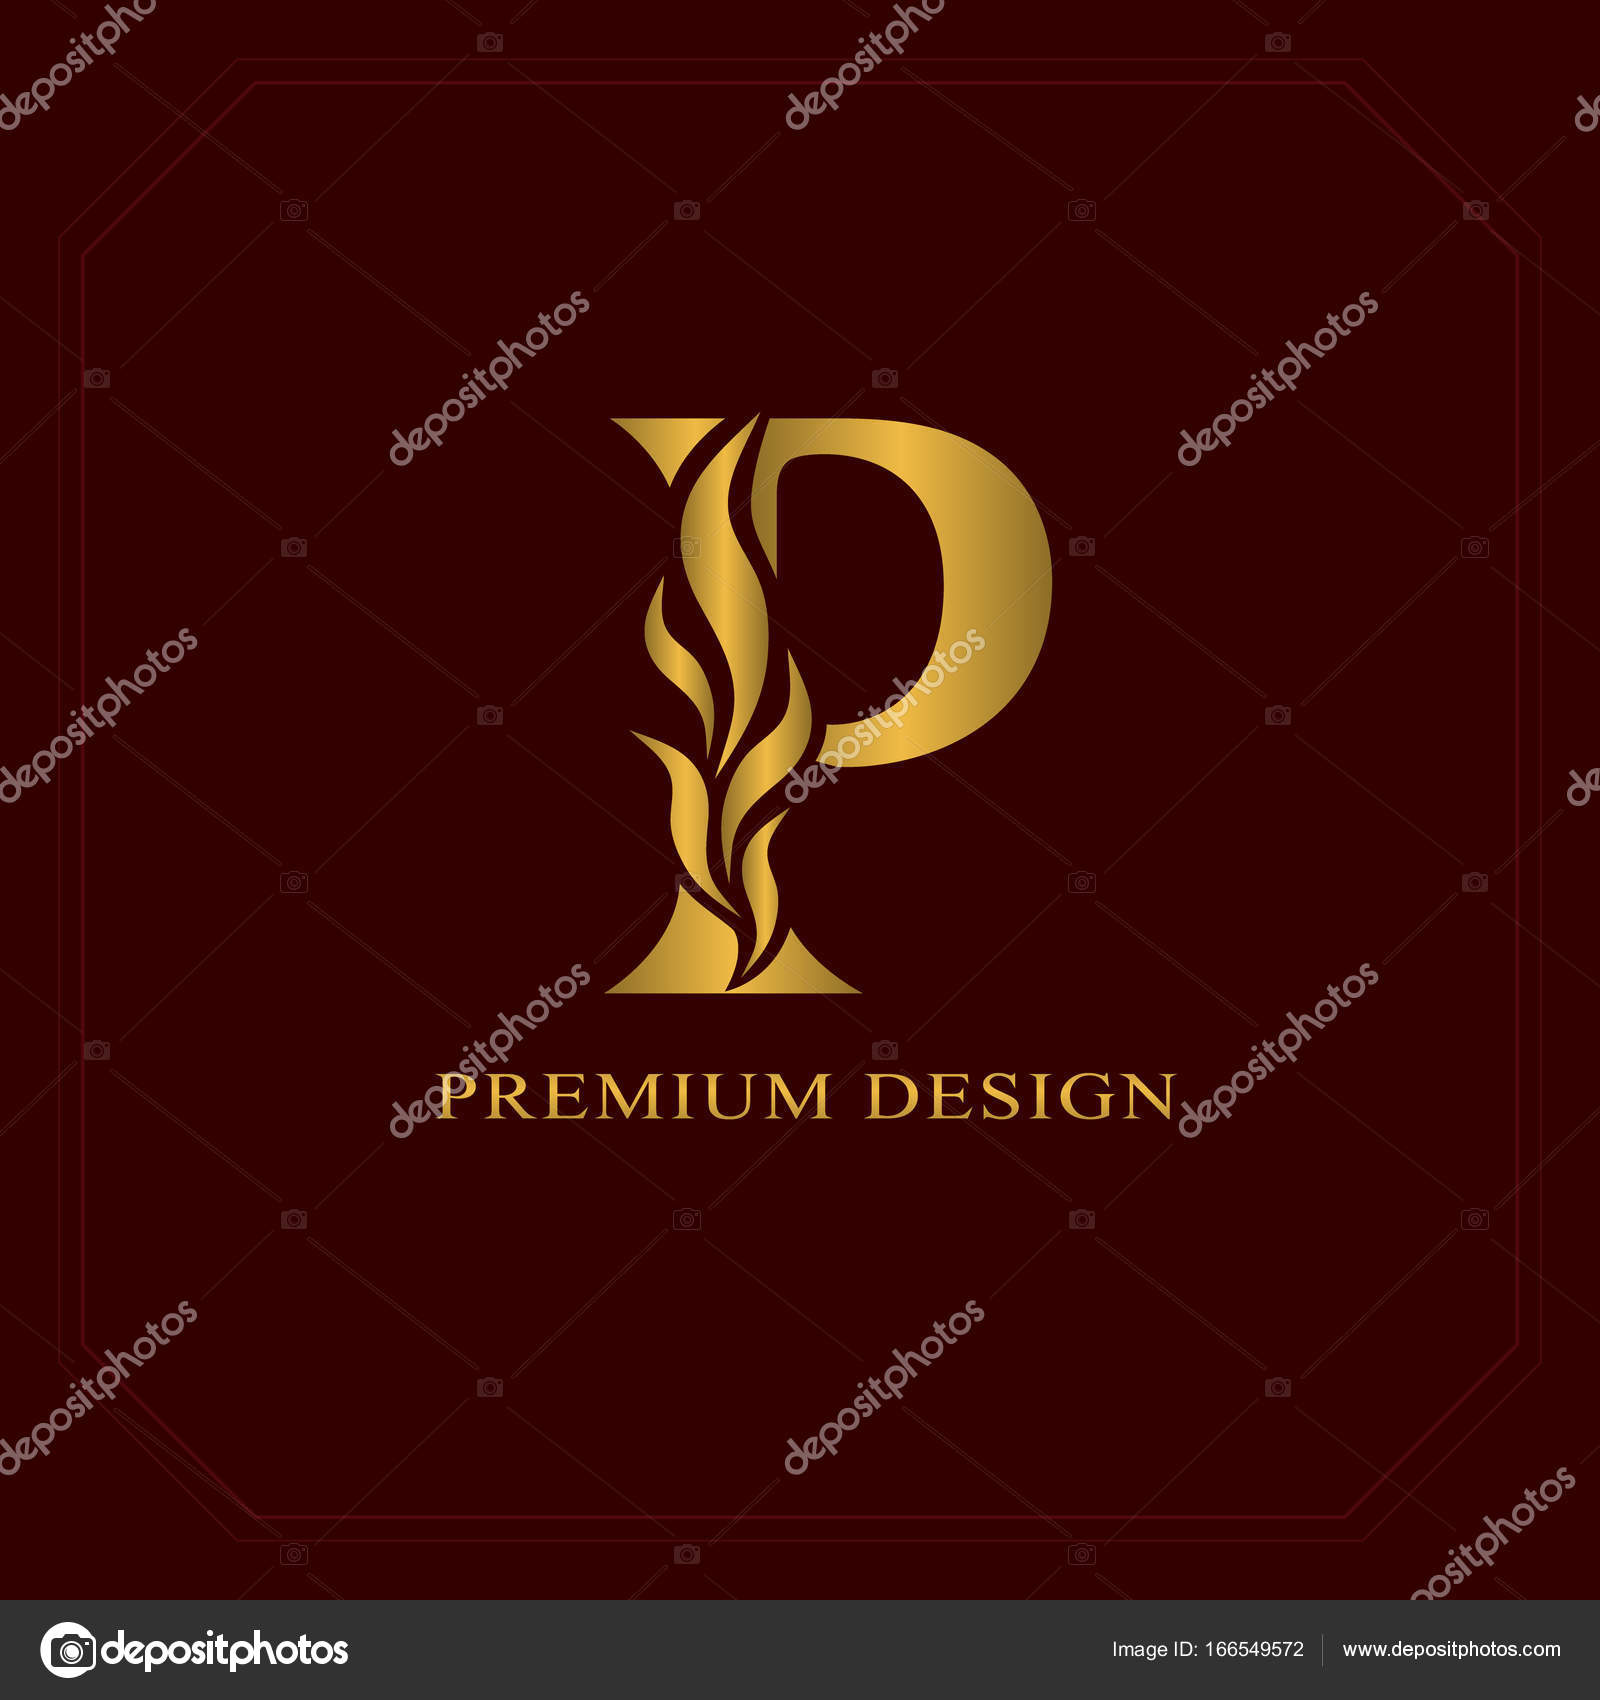 Gold Elegant Letter P Graceful Style Calligraphic Beautiful Logo Vintage Drawn Emblem For Book Design Brand Name Business Card Restaurant Boutique